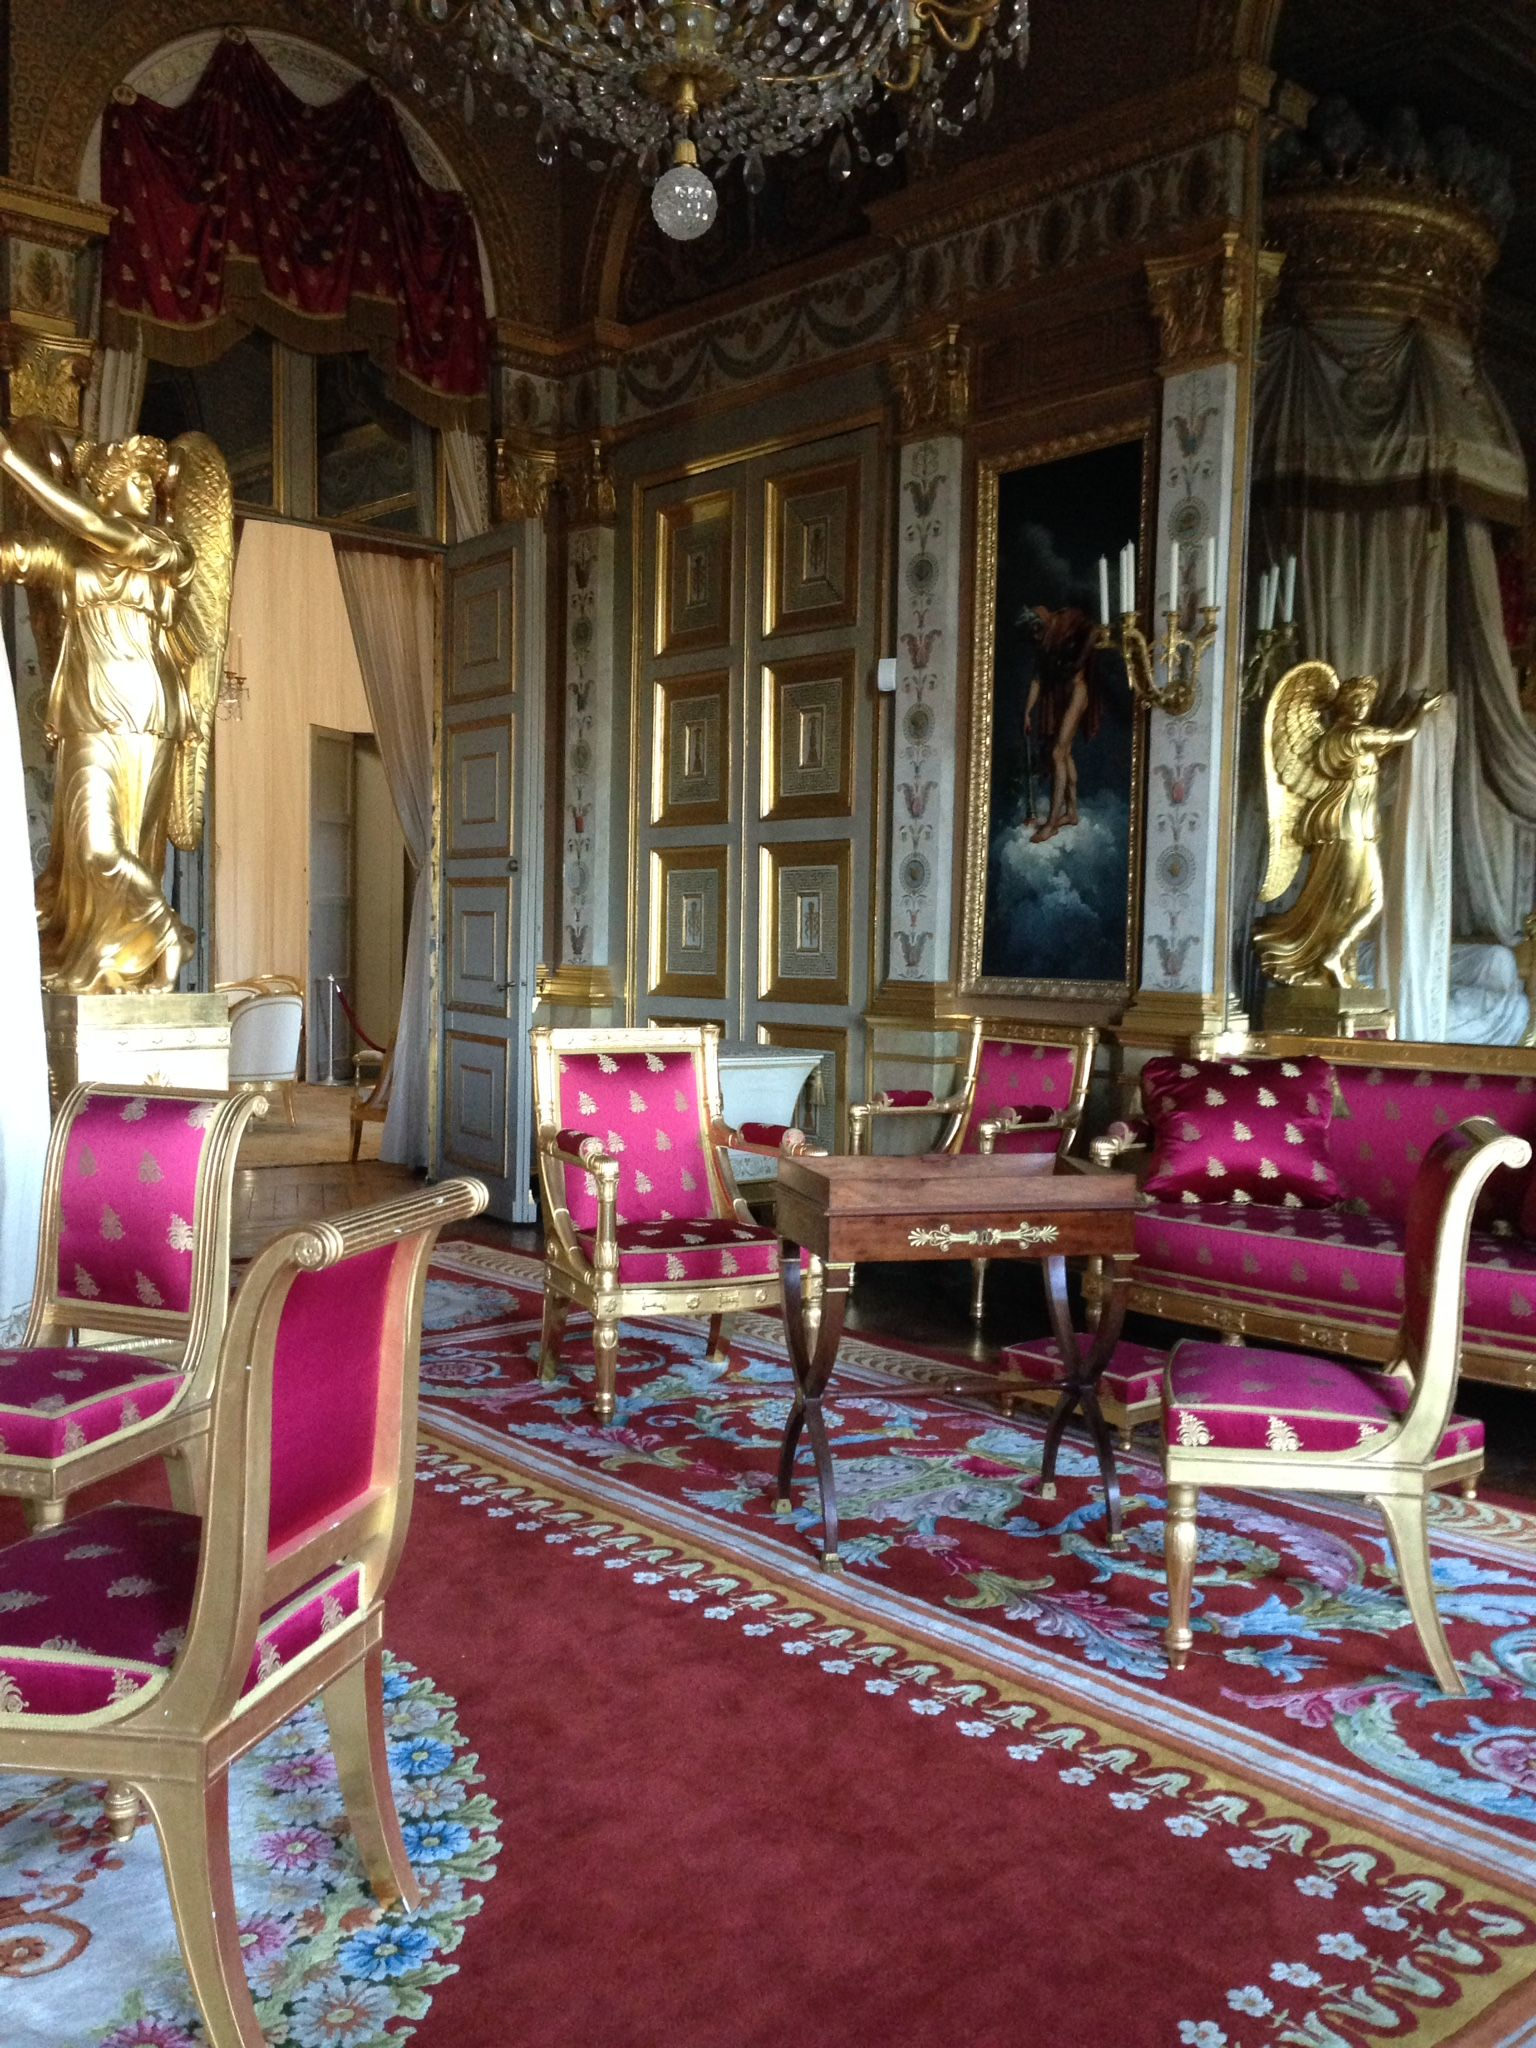 Interiors France Chateau De Compiegne Interior France Only Interior